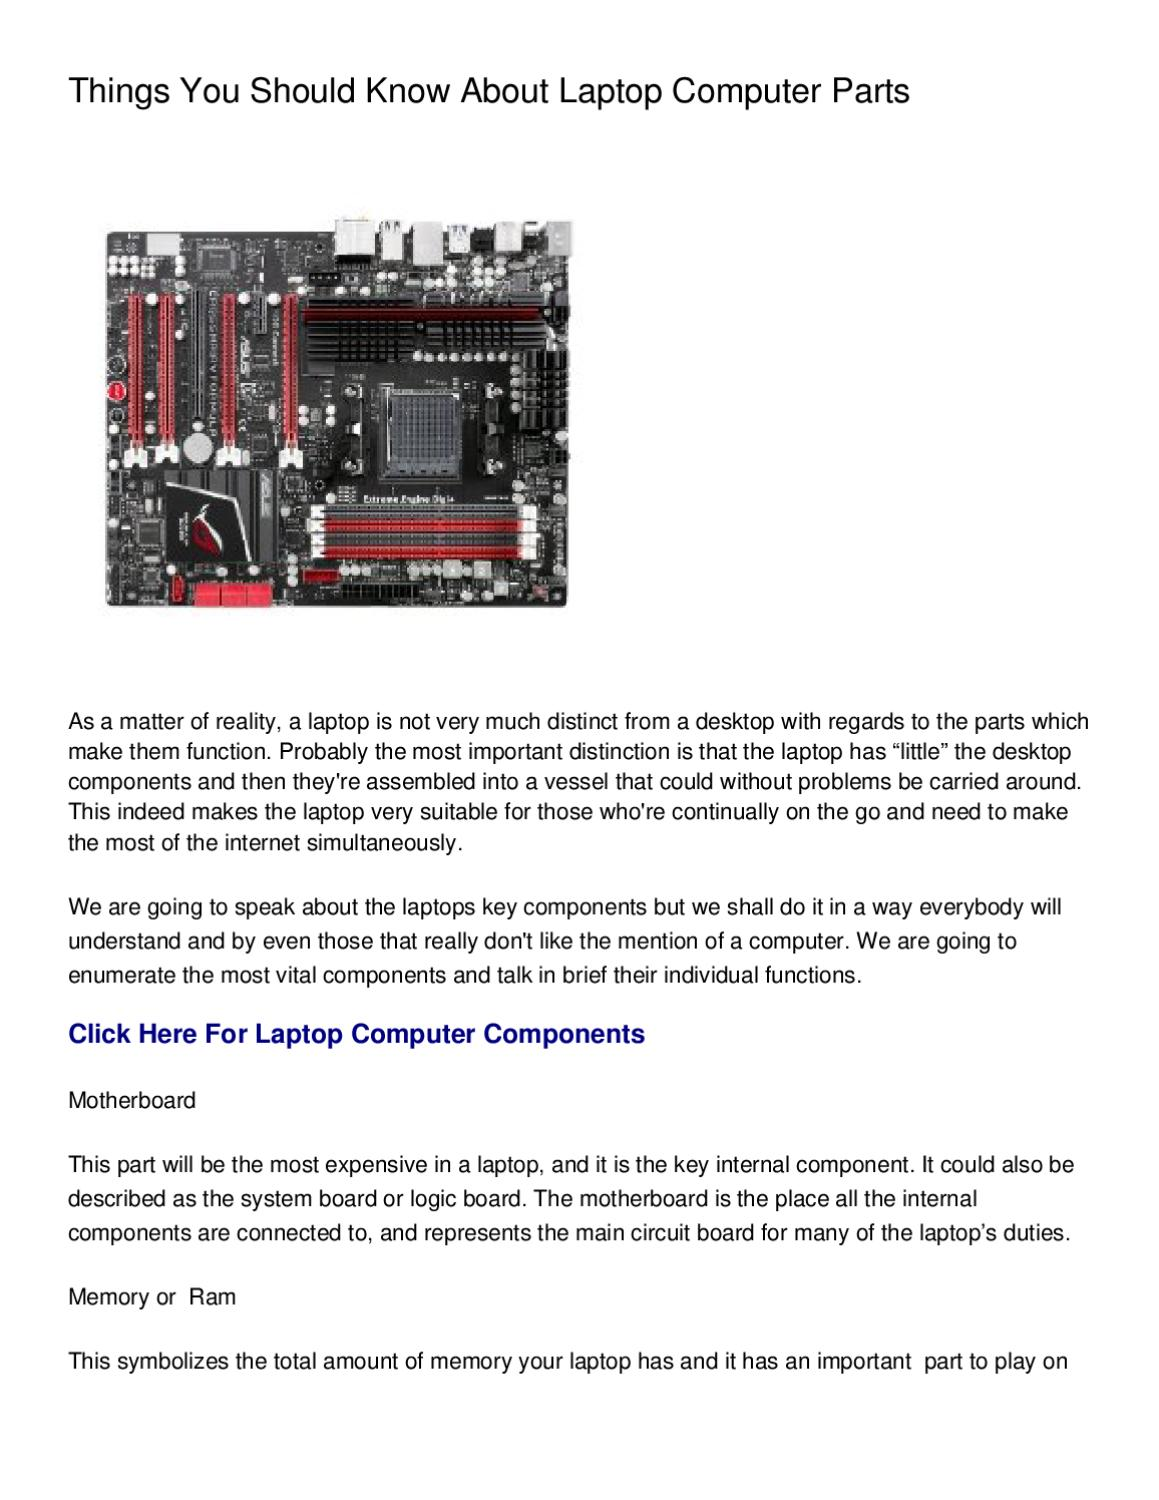 Things You Should Know About Laptop Computer Parts by Evelyn Pouliot